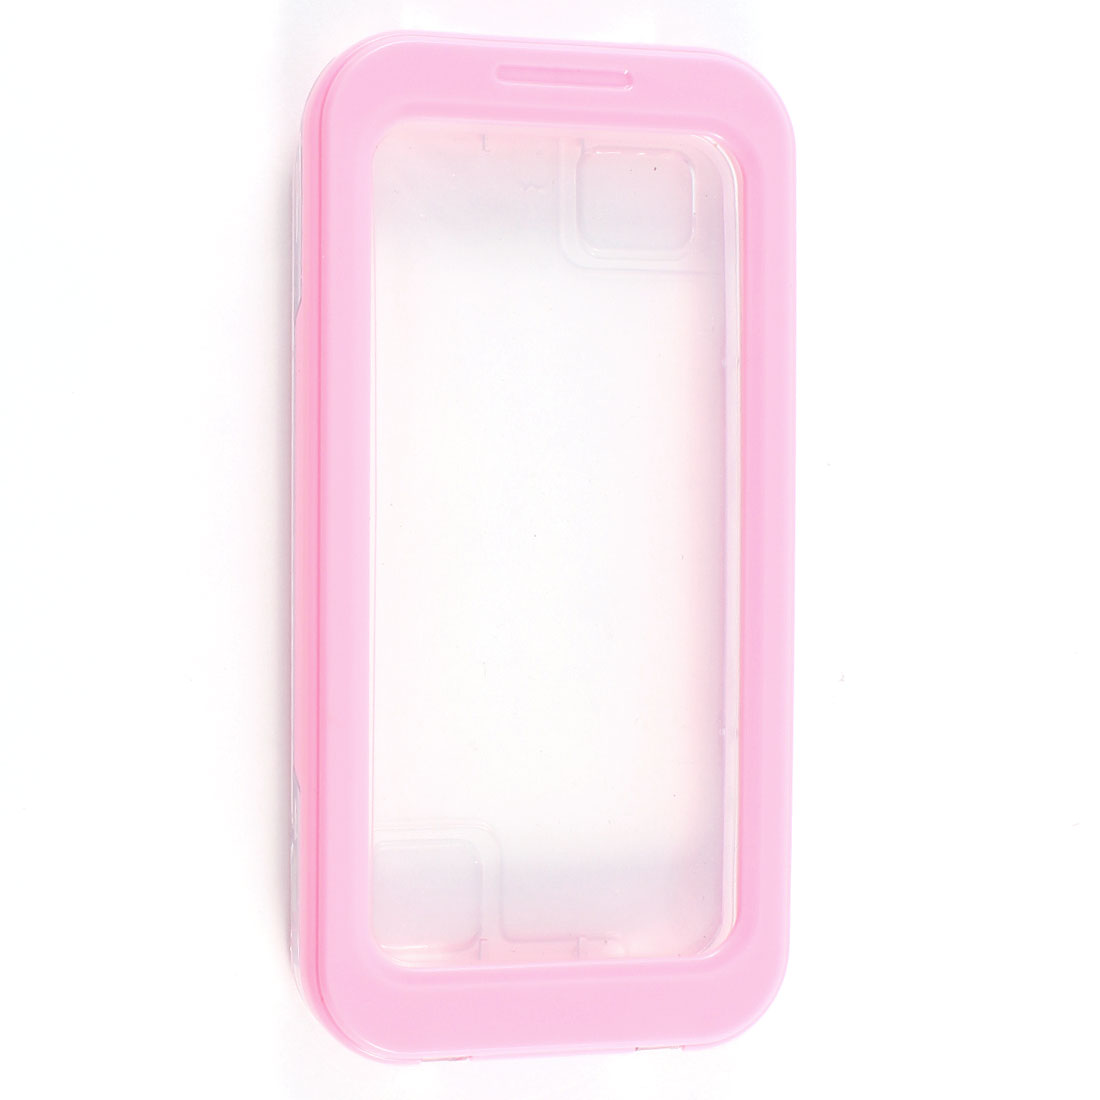 Pink Waterproof Sandproof Dirt Proof Case for iPhone 4 4G 4S 5 5G 4GS w Strap